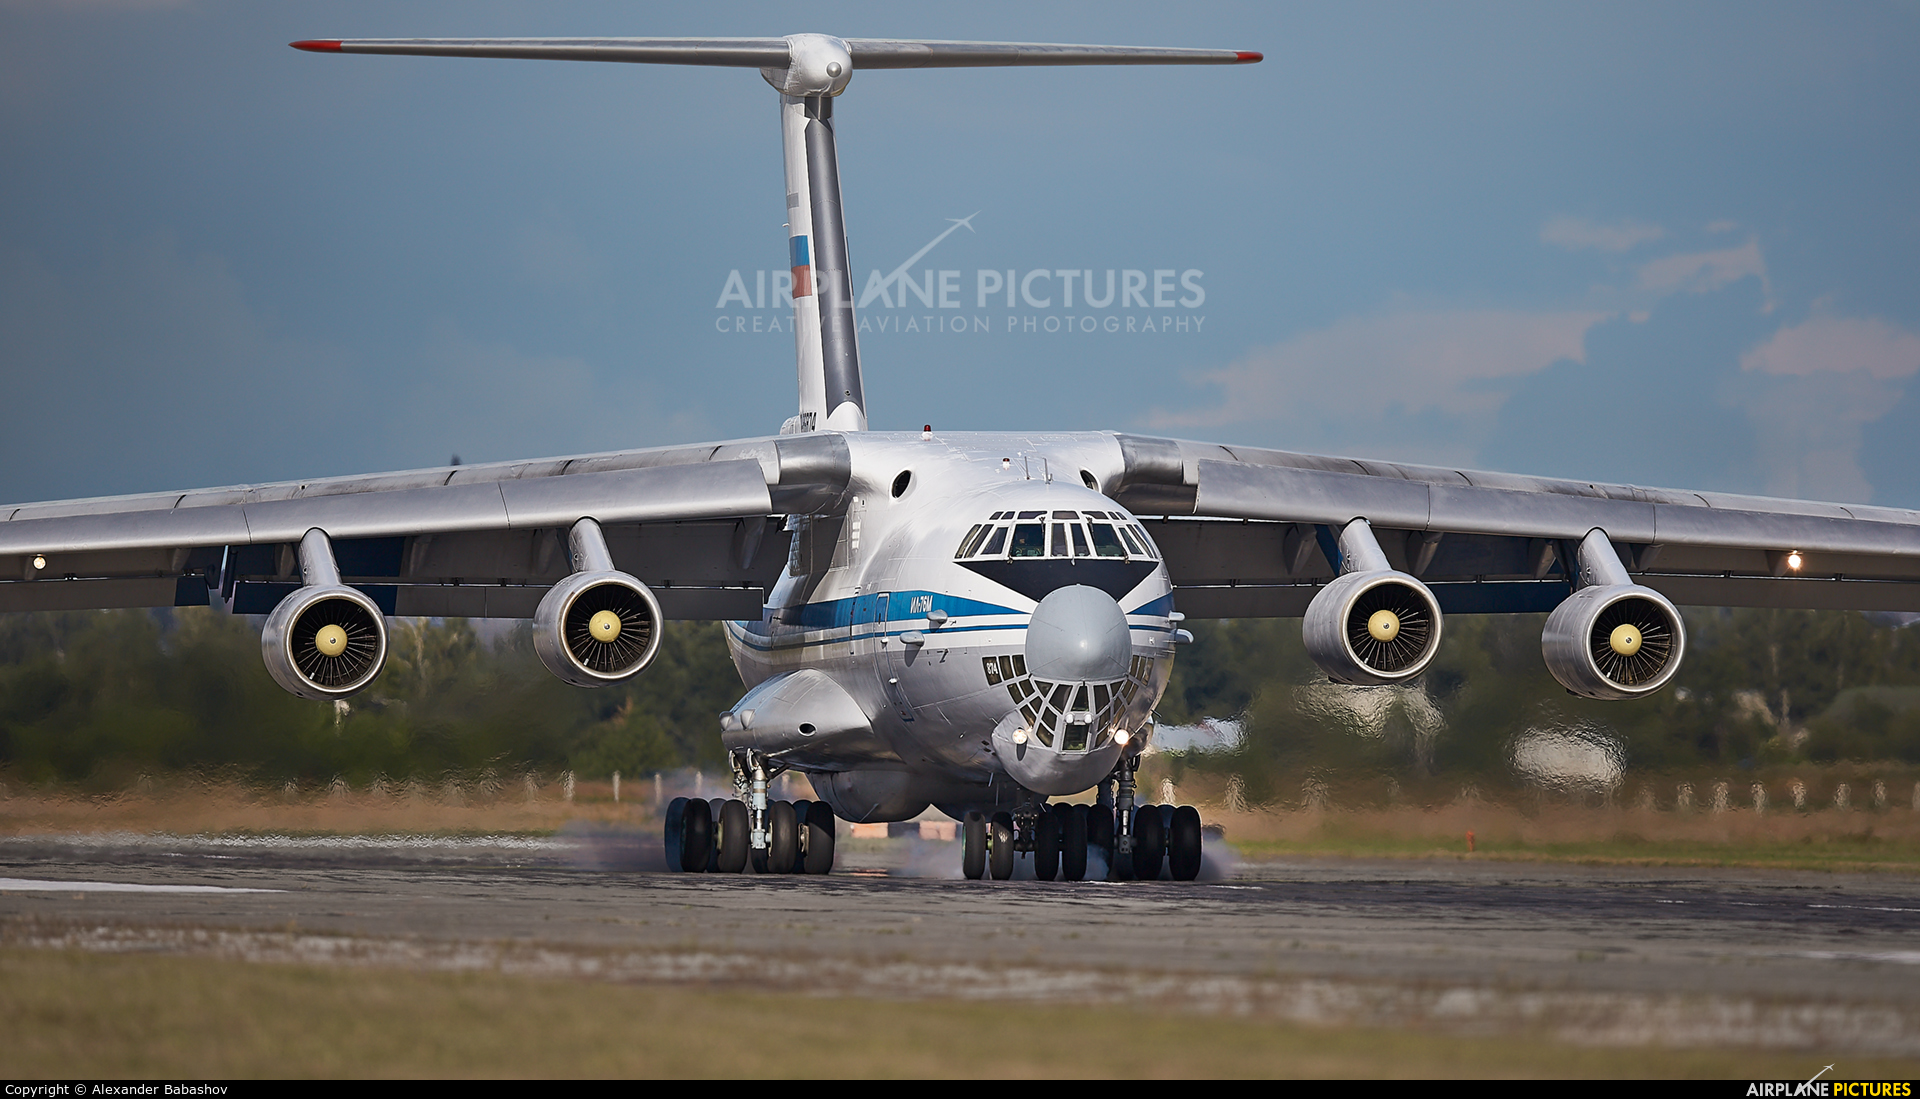 Russia - Air Force - aircraft at Undisclosed Location